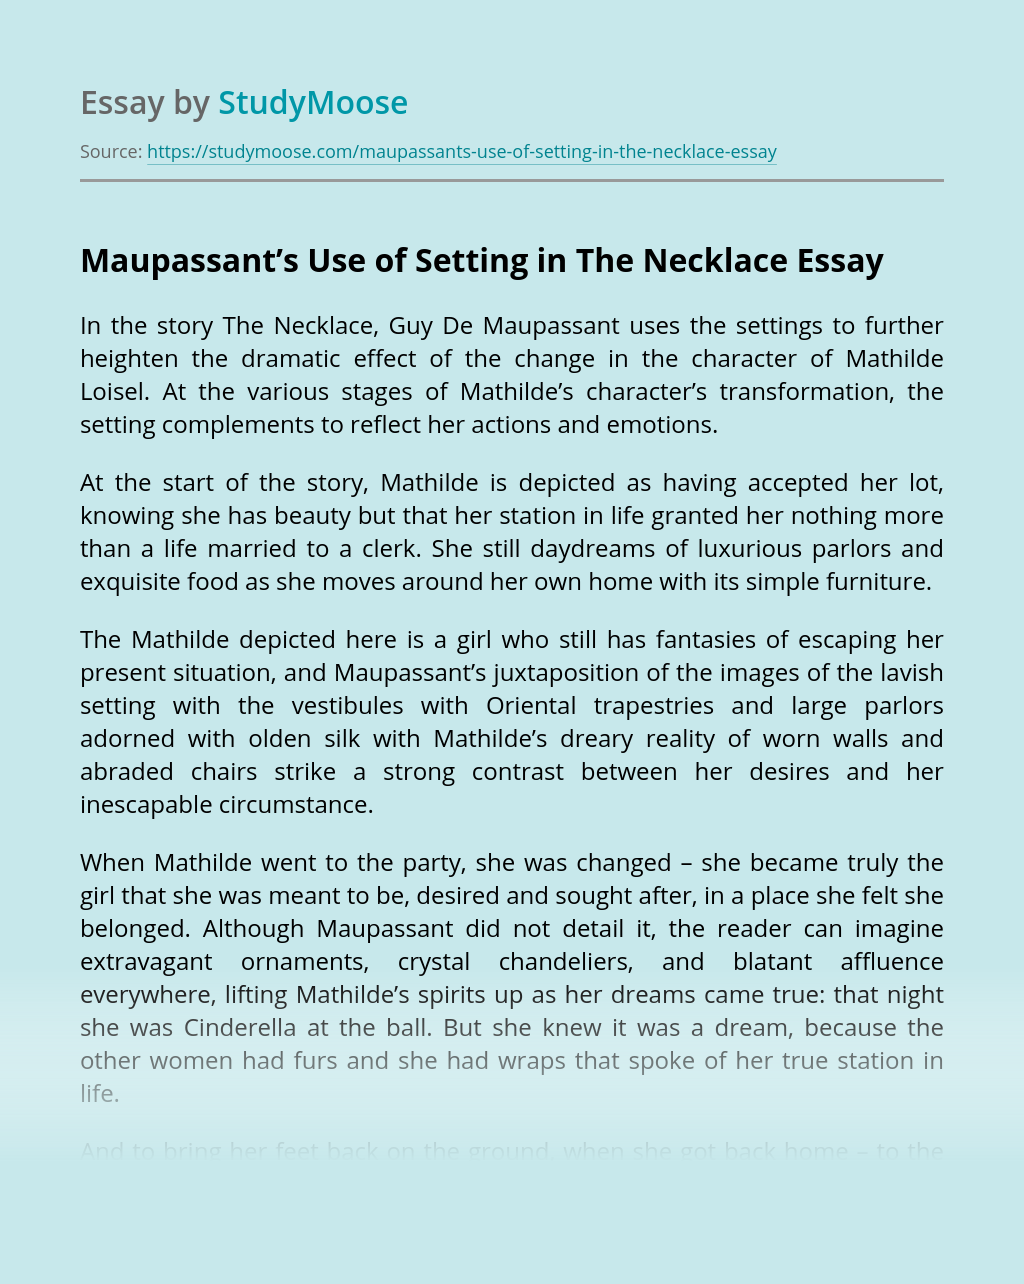 Maupassant's Use of Setting in The Necklace